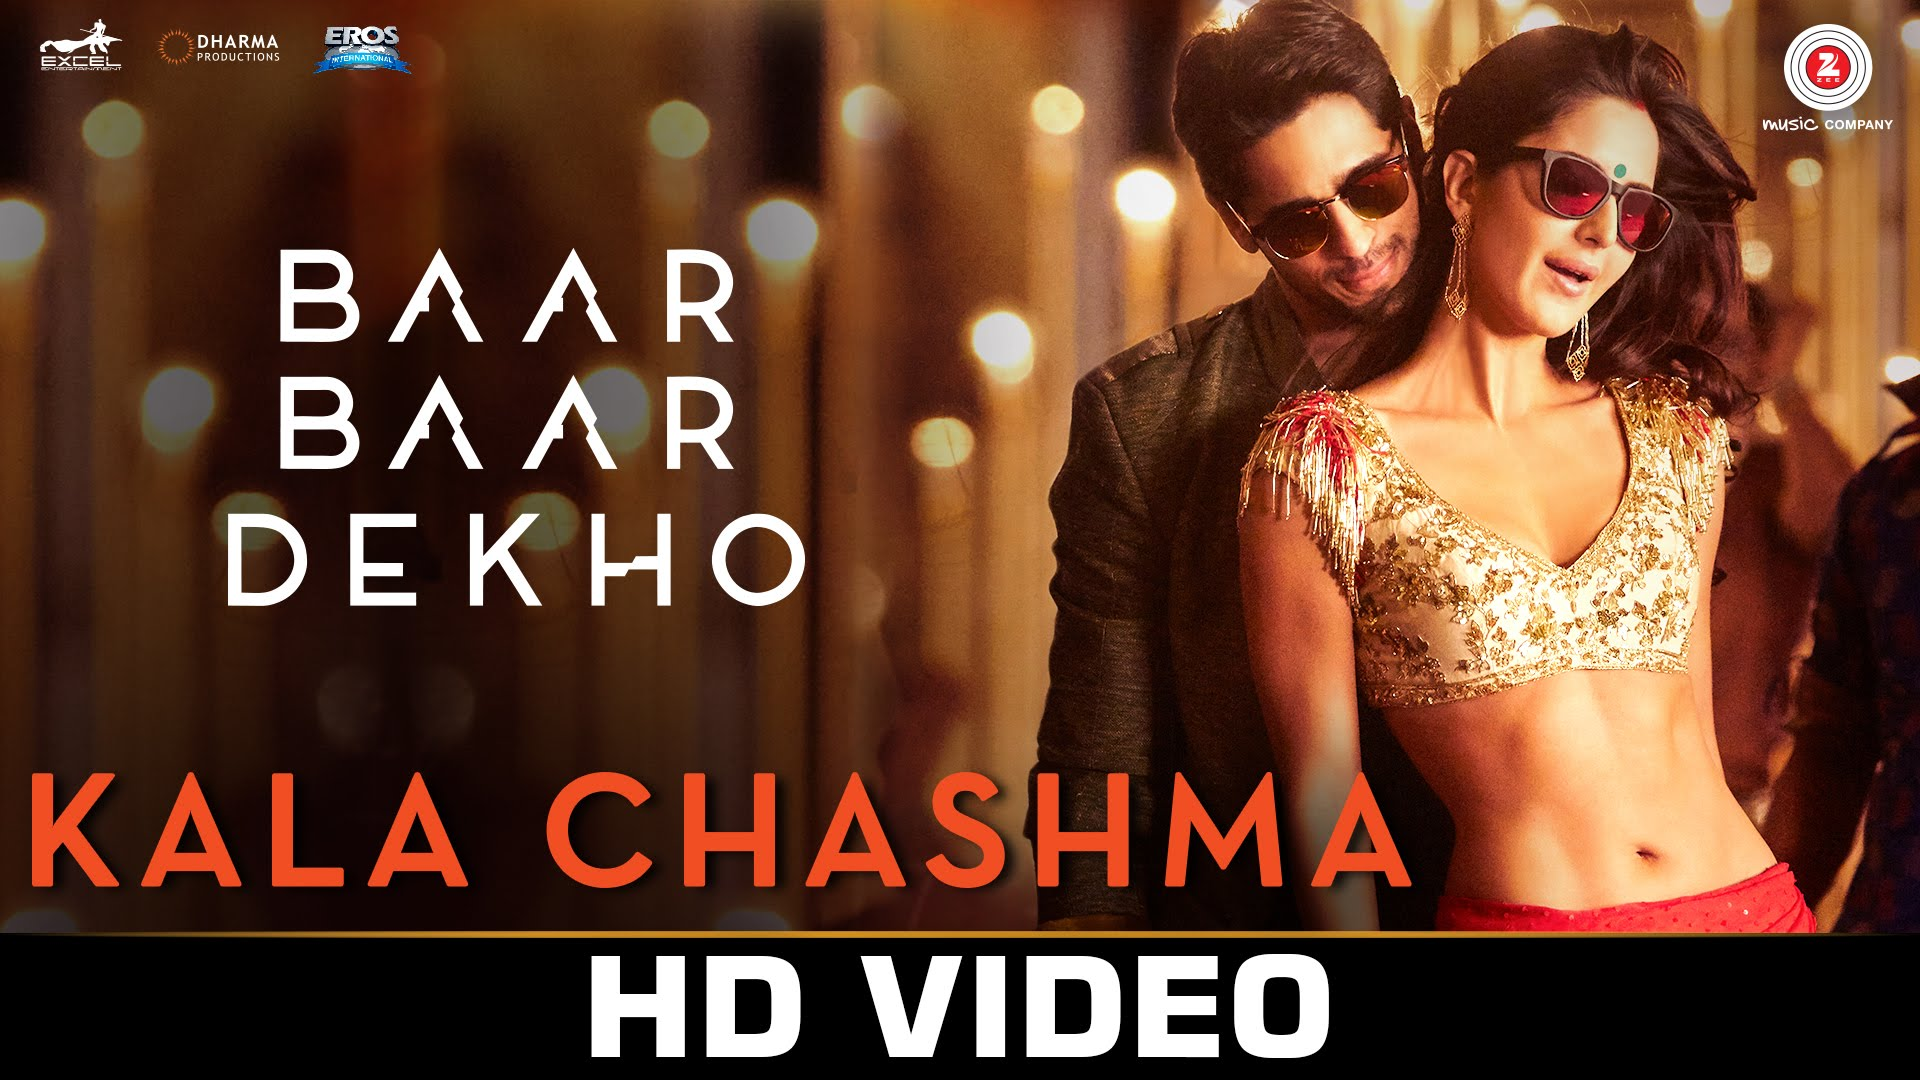 Get the party started with Kala Chashma song from Baar Baar Dekho!